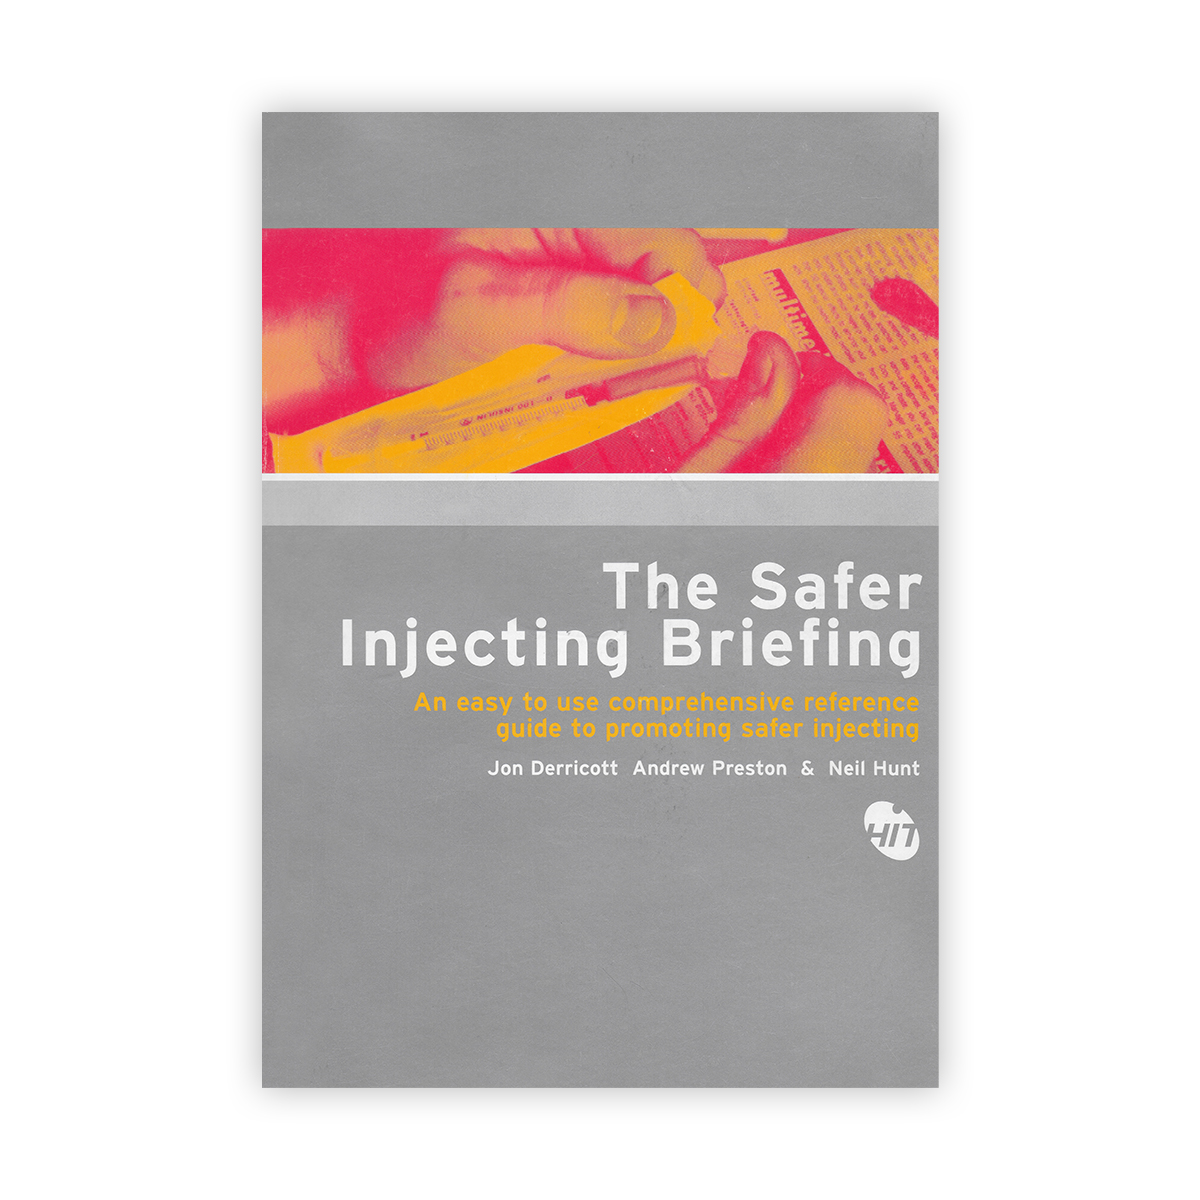 The Safer Injecting Briefing (pdf)